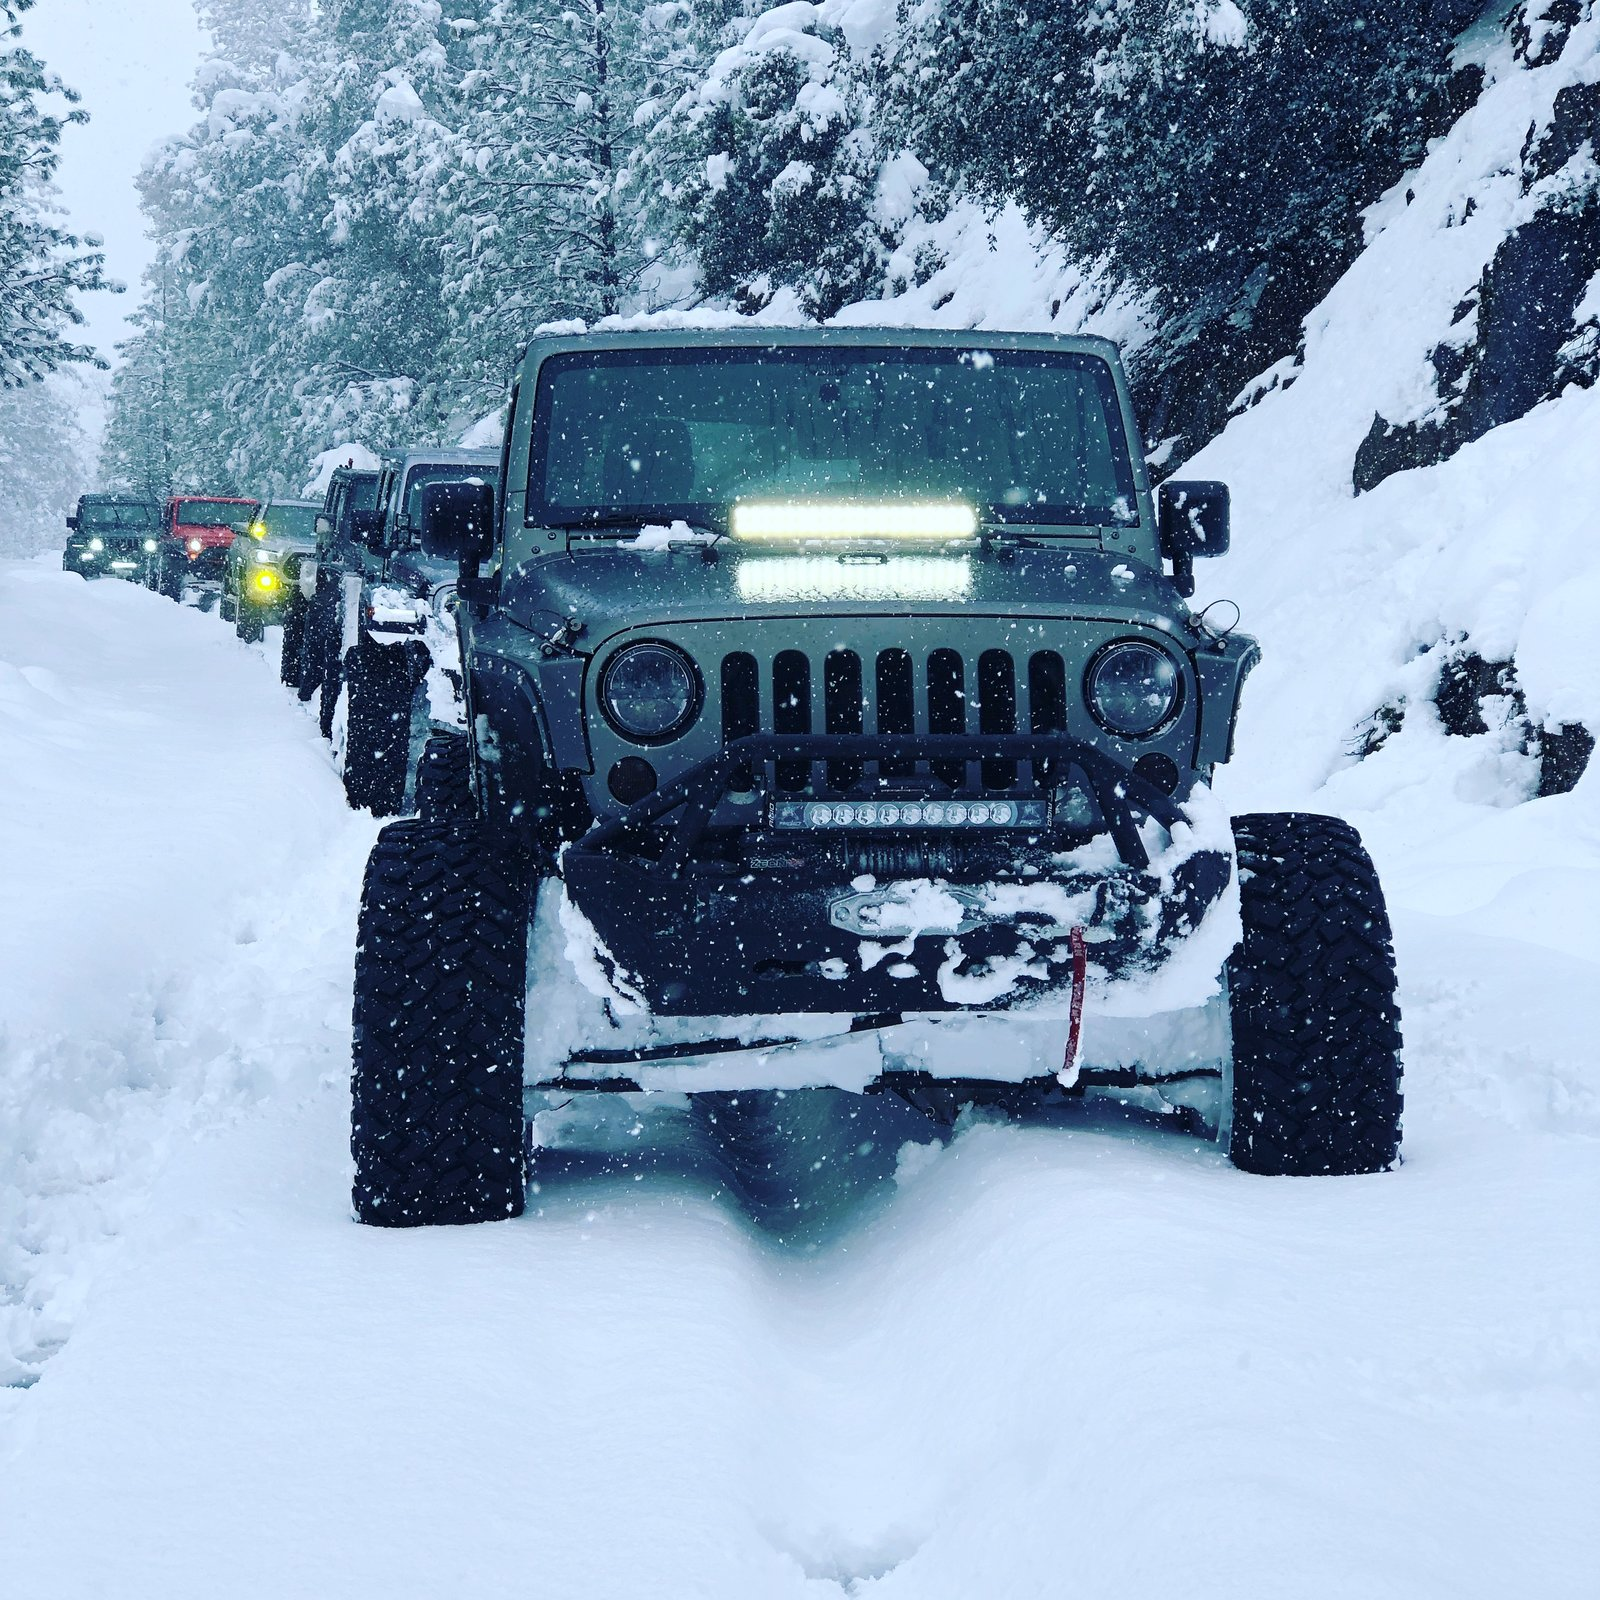 Rubicons! Lets see em! - Page 13 - Jeep Wrangler Forum